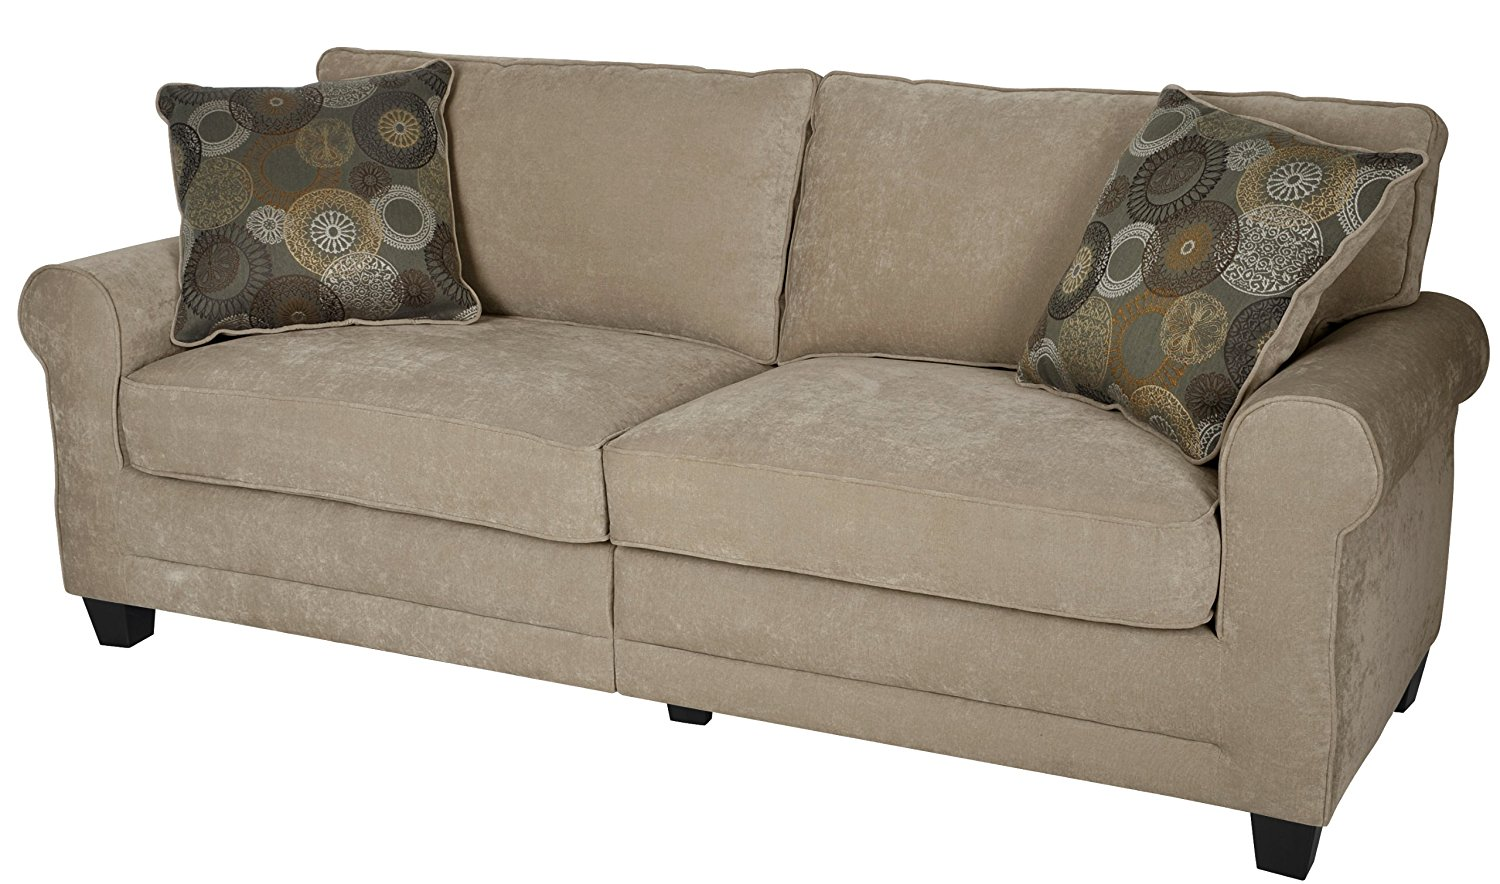 air sofa kam bad the pink co uk serta luxury tan 78 in light brown  rochester